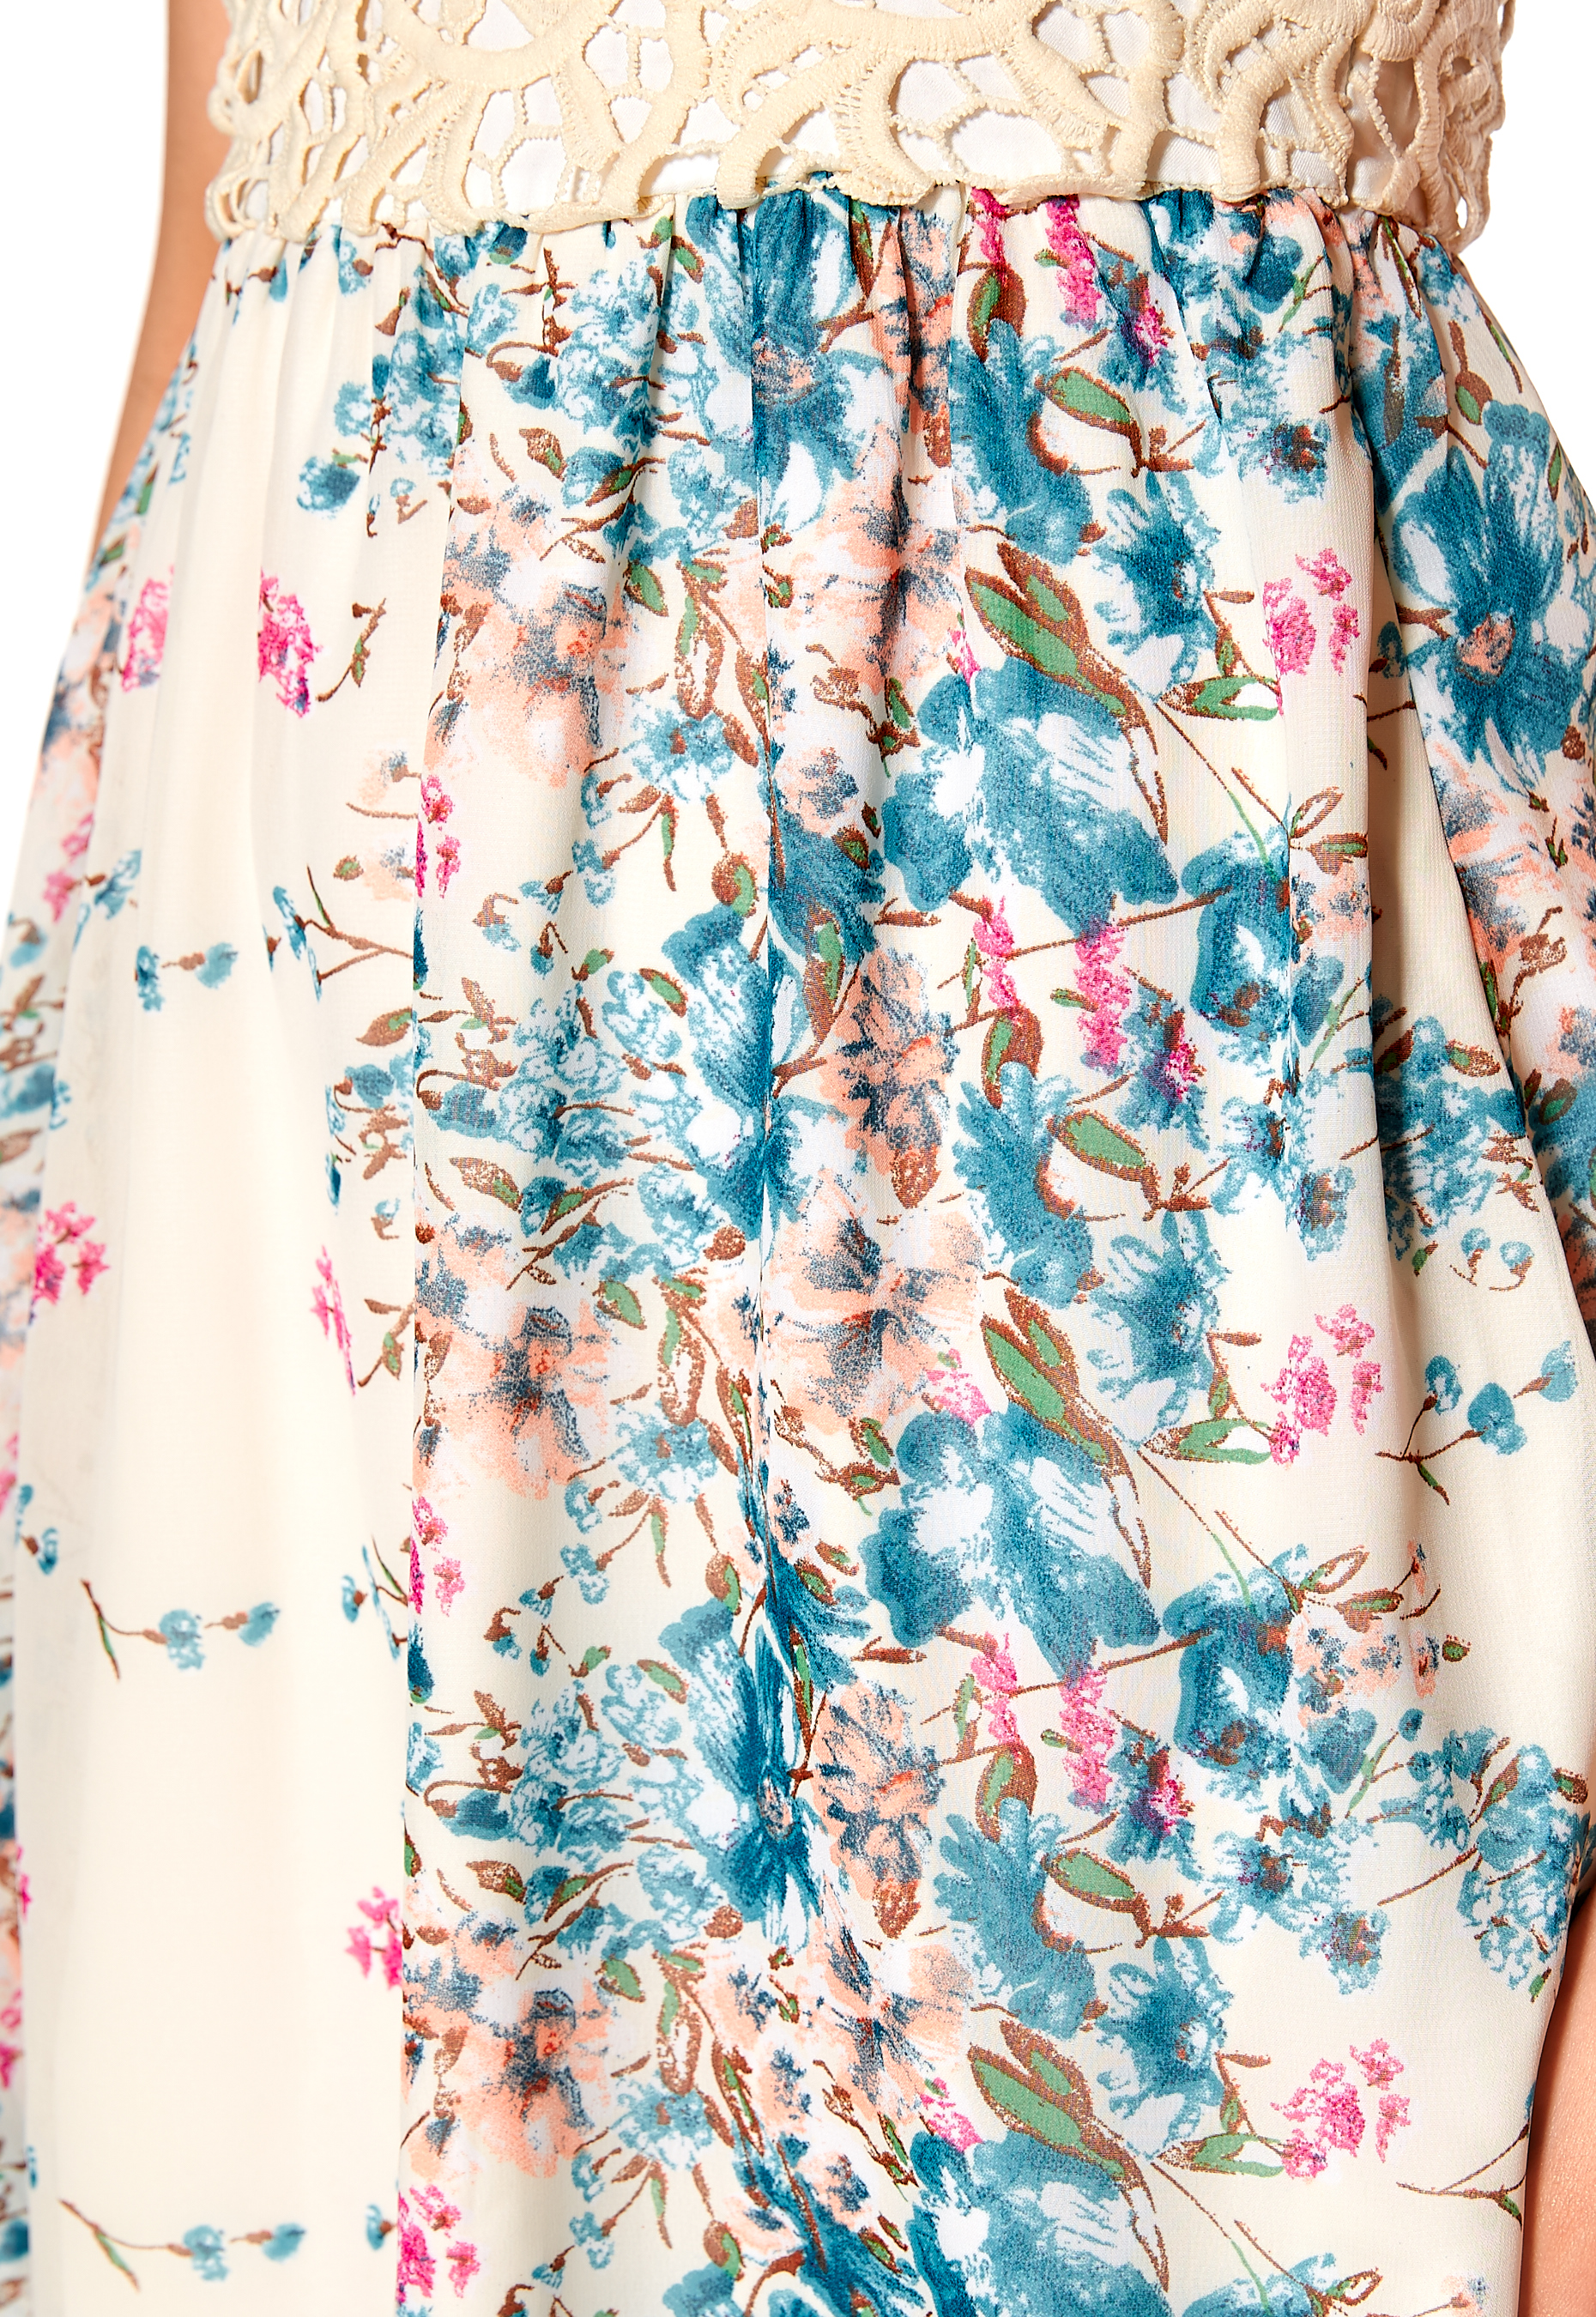 dry lake lily print dress bubbleroom pictures to pin on pint